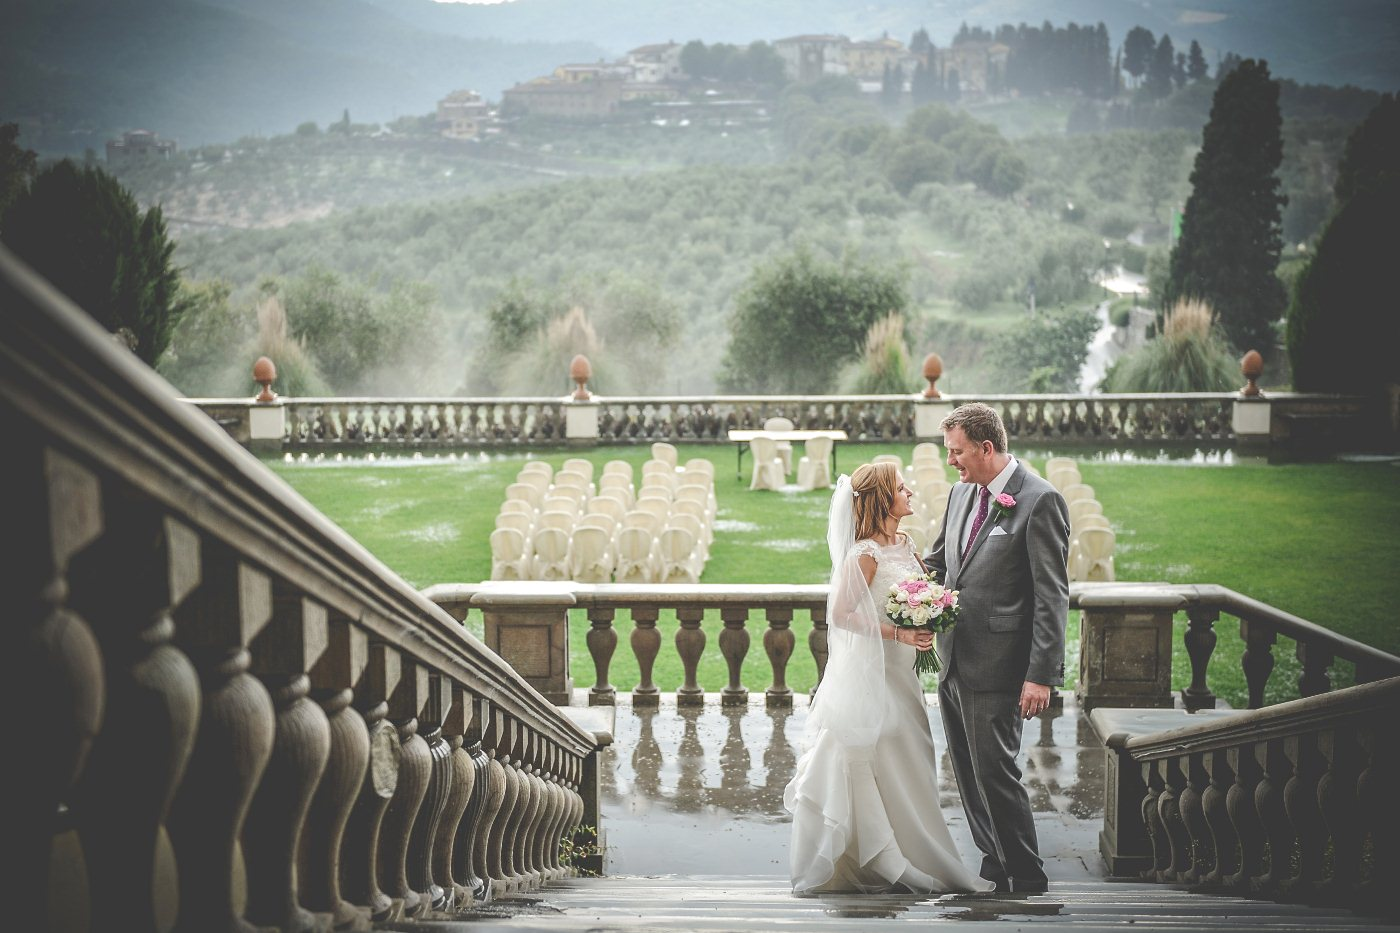 Wedding Photographer Artimino | Domenico Costabile